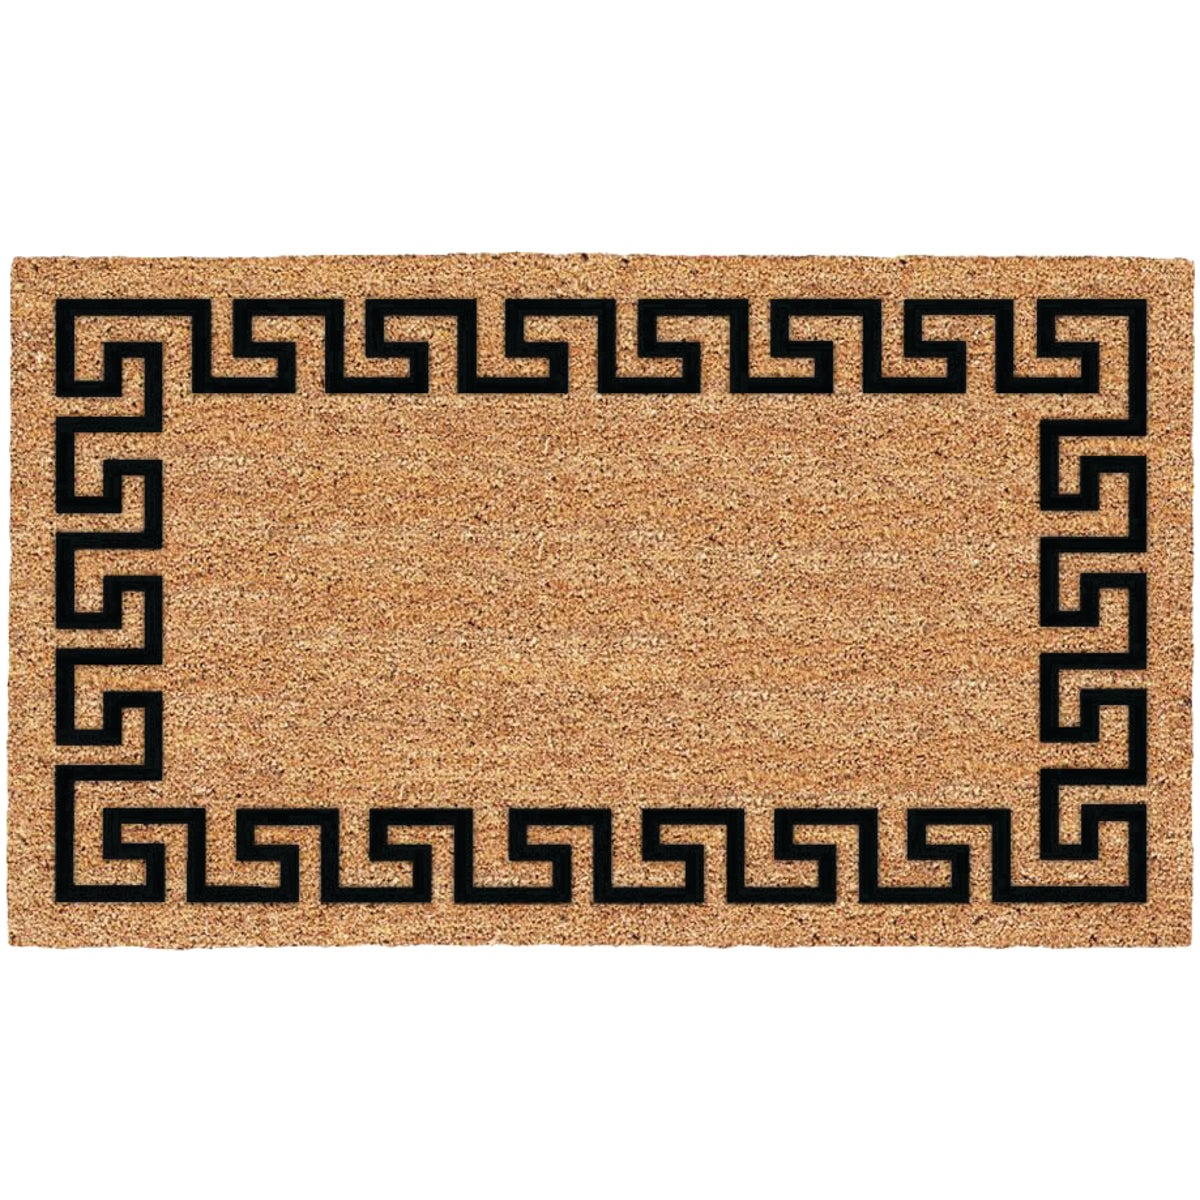 GREEK KEY DOORMAT - 31681 by Uscoa Llc